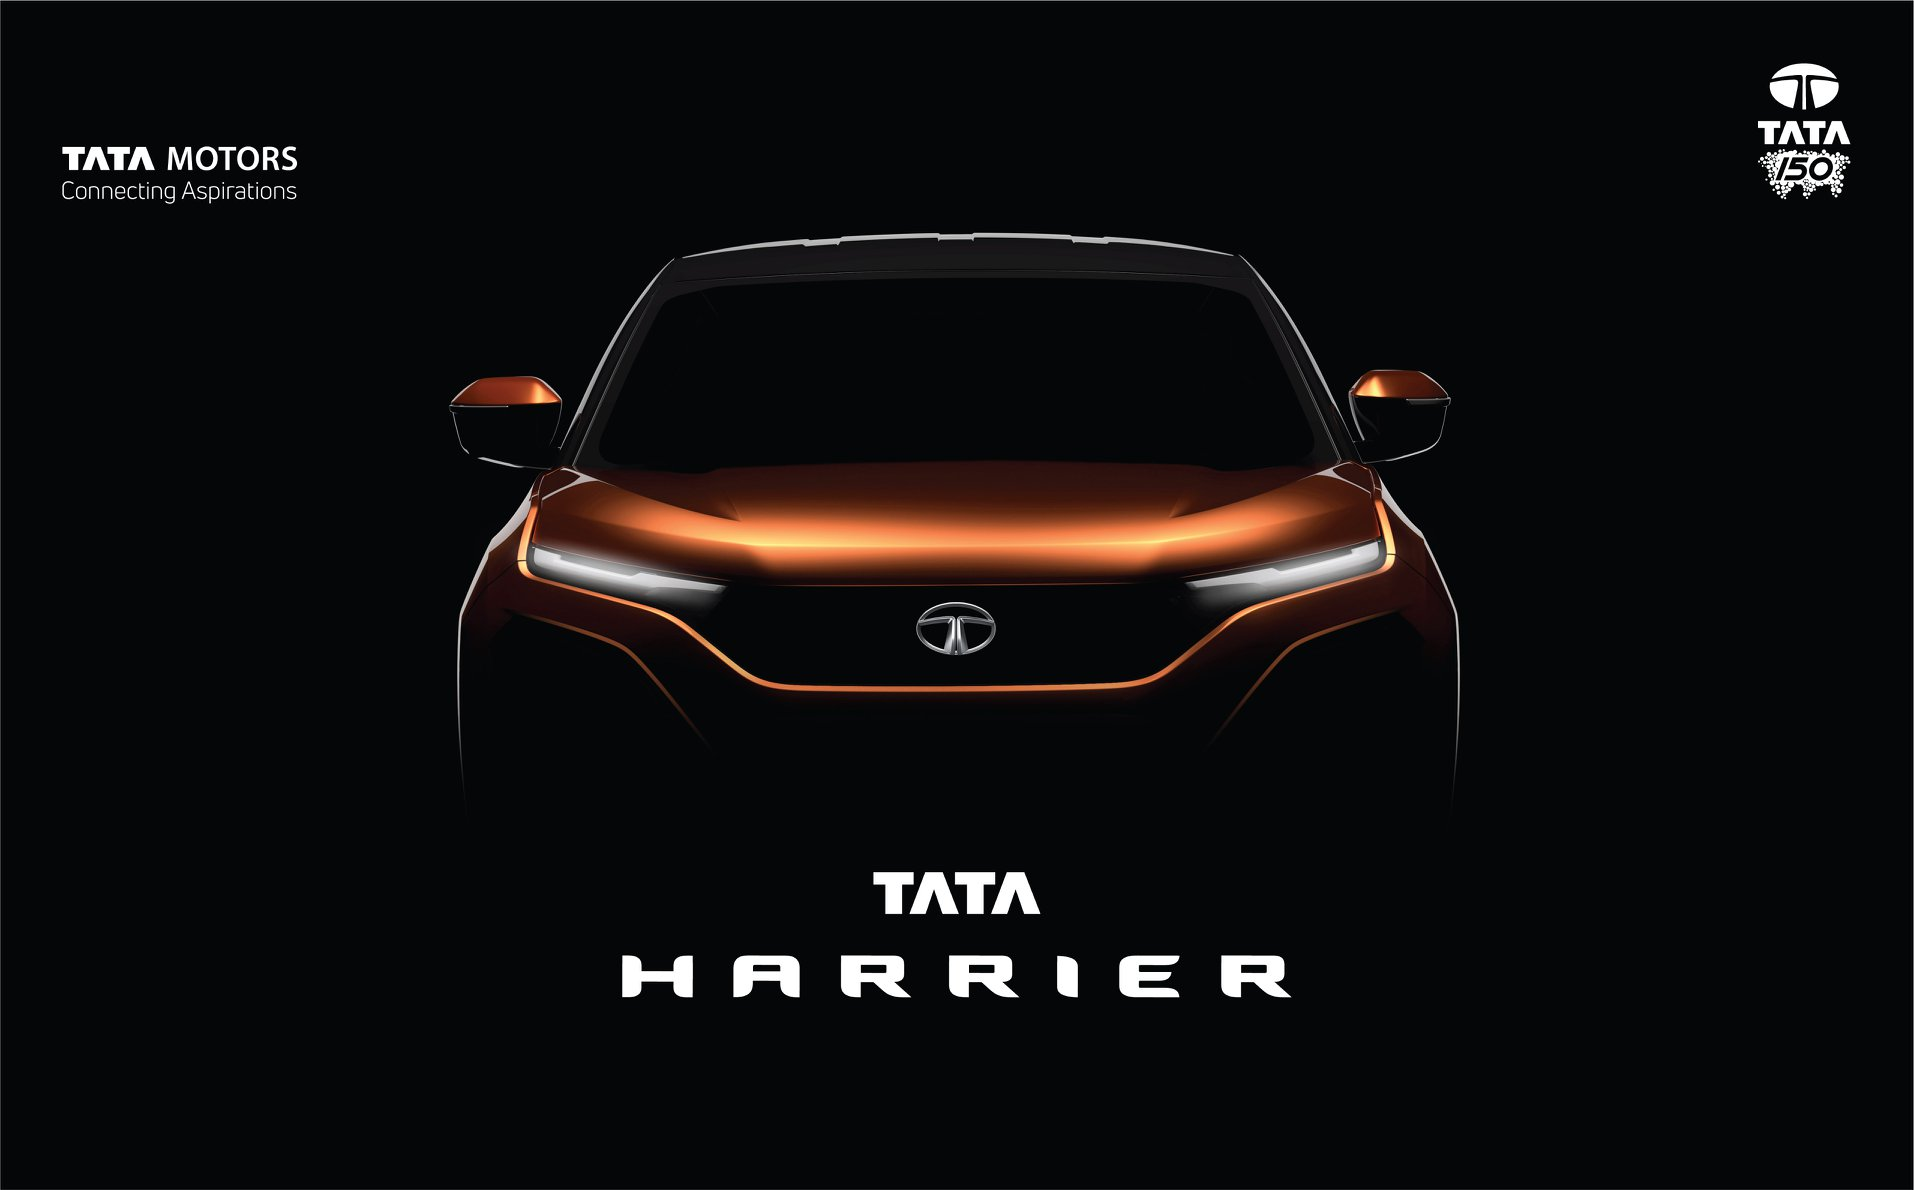 Tata H5X Concept SUV officially named Tata Harrier